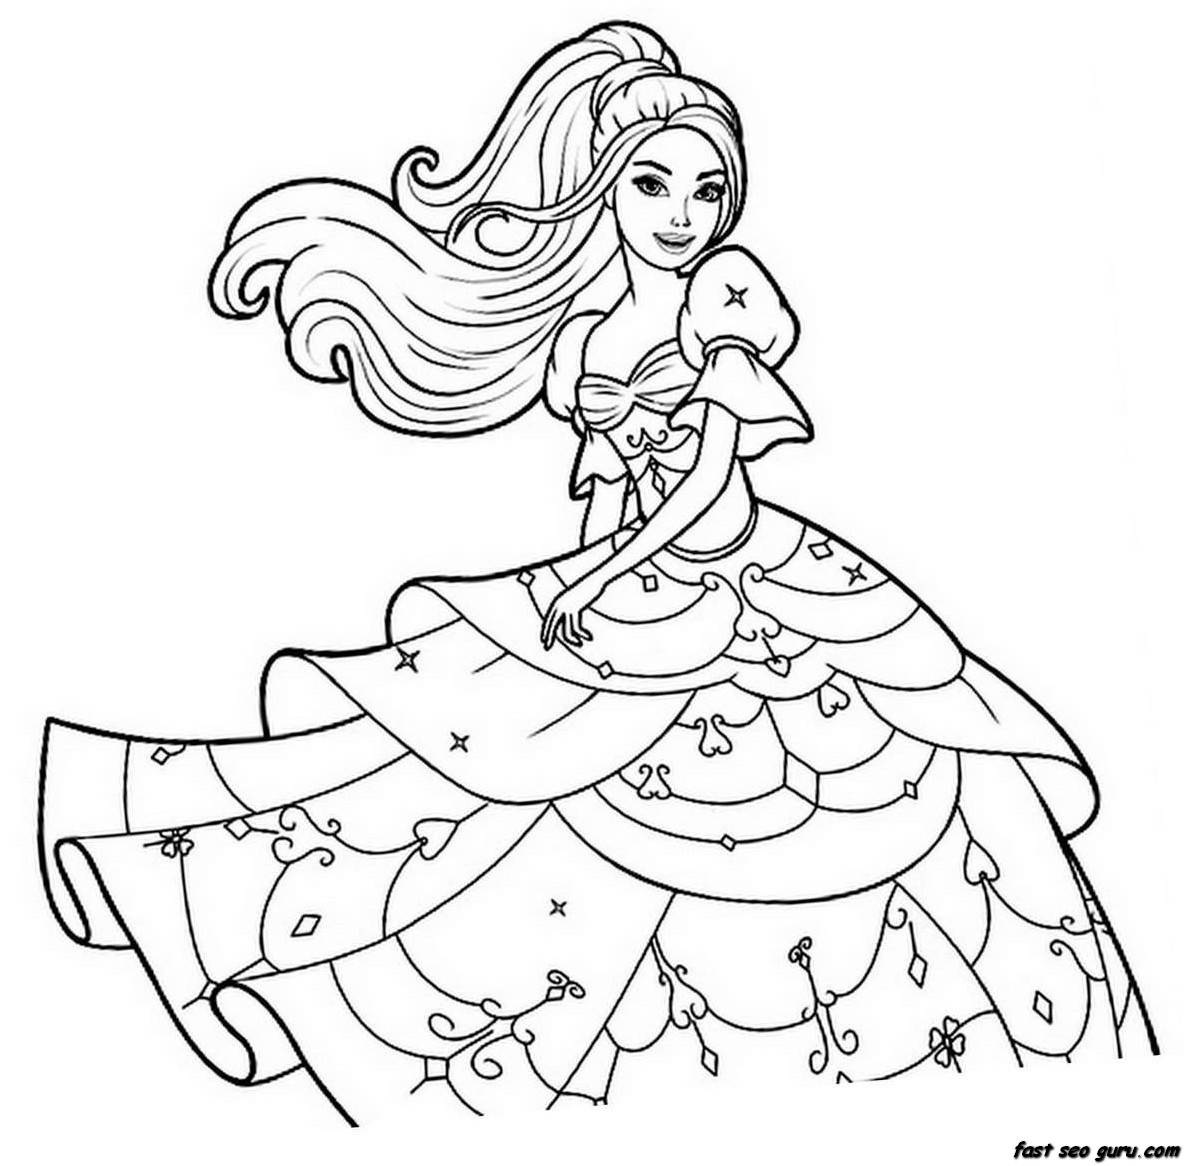 girls coloring page cute girl coloring pages to download and print for free page girls coloring